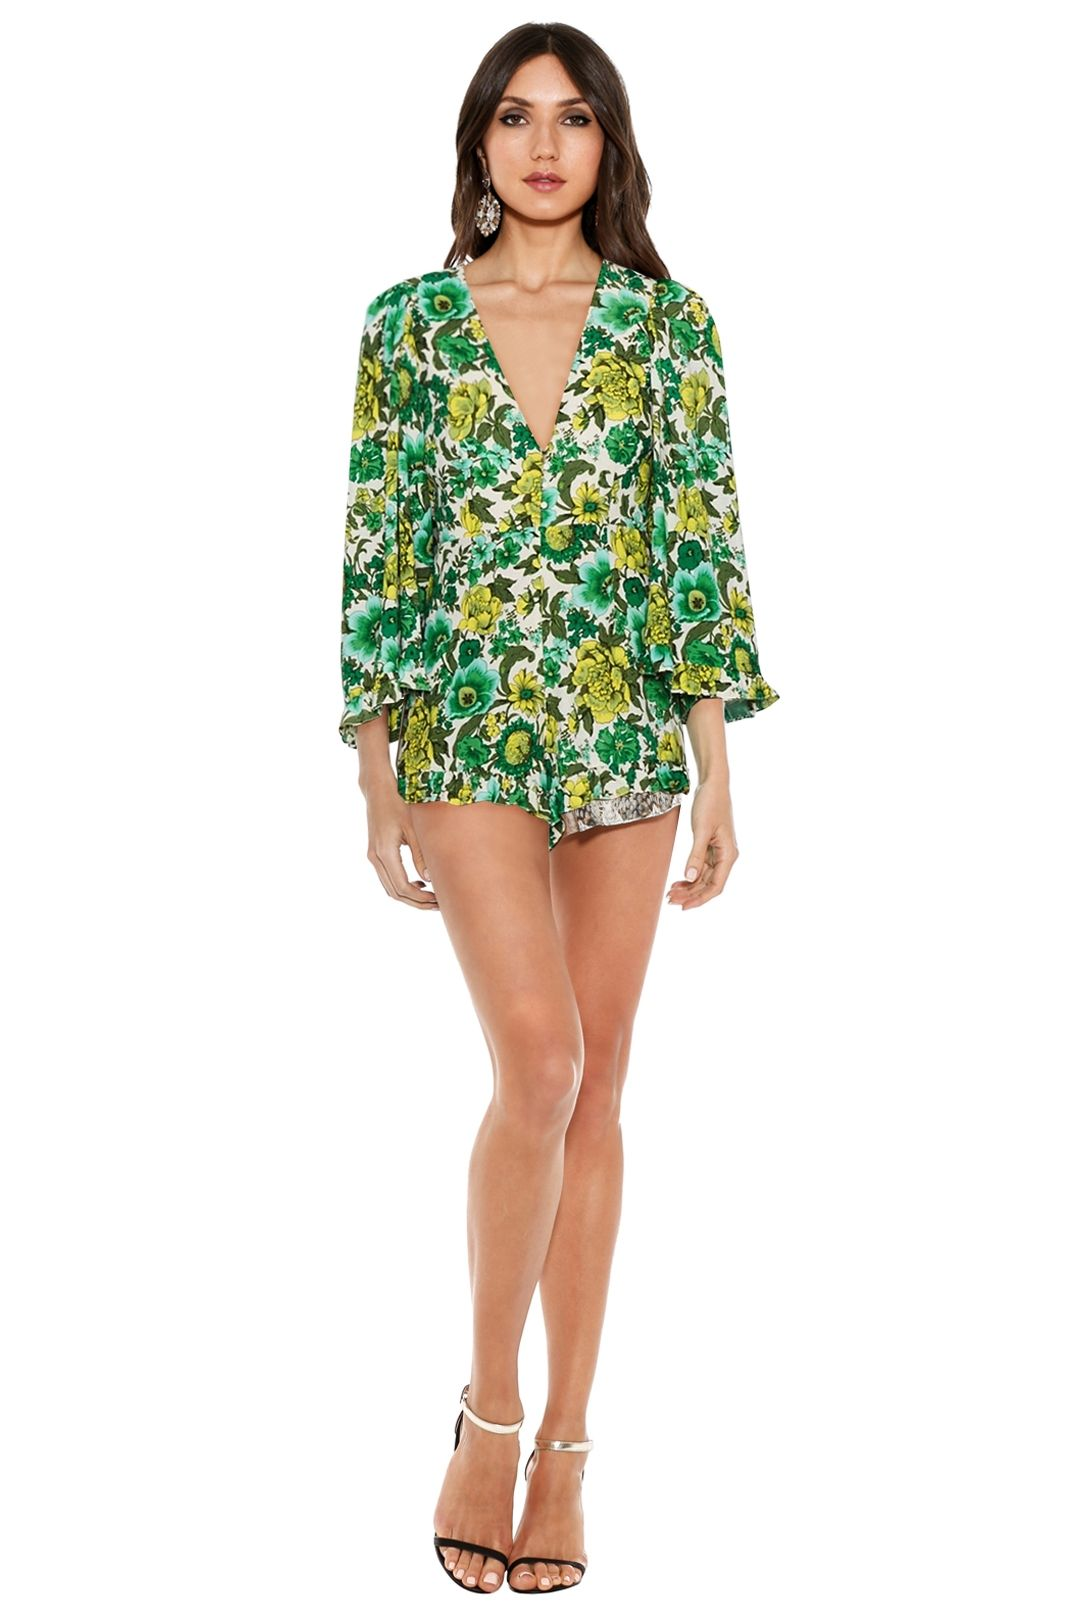 Alice McCall - J'Adore Playsuit - Forest Green - Front